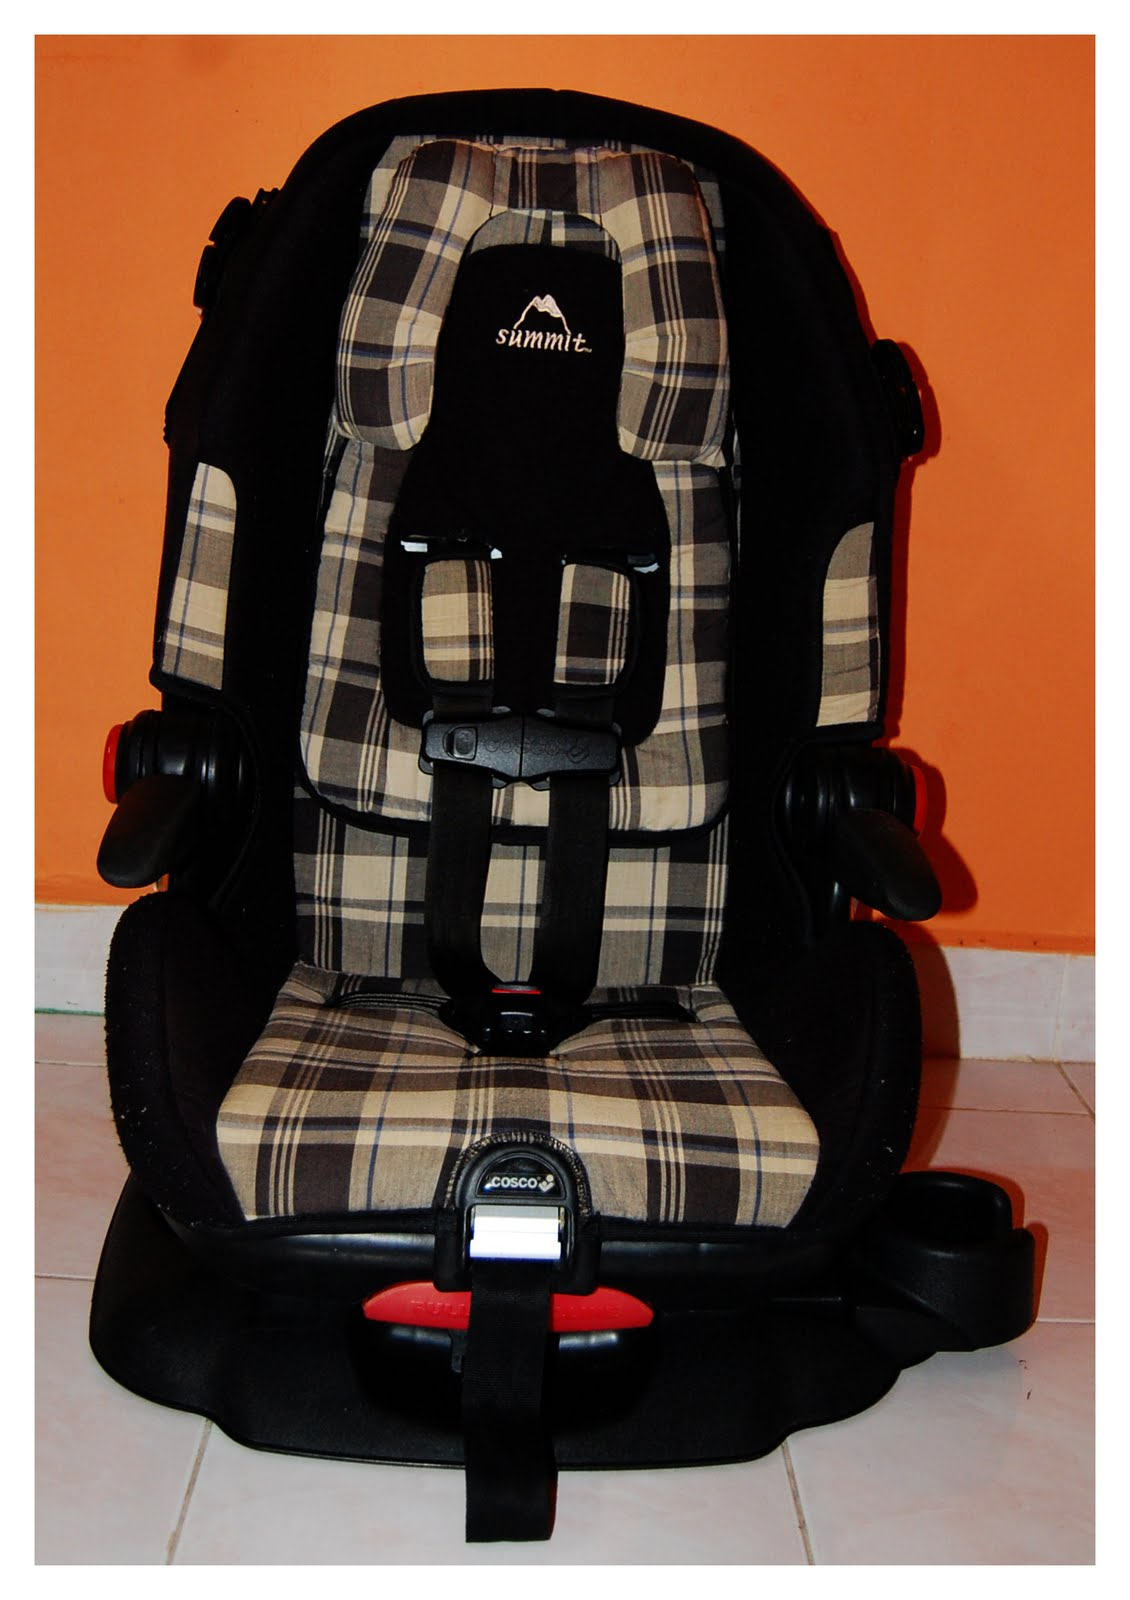 crazybranded cosco summit high back toddler car seat. Black Bedroom Furniture Sets. Home Design Ideas